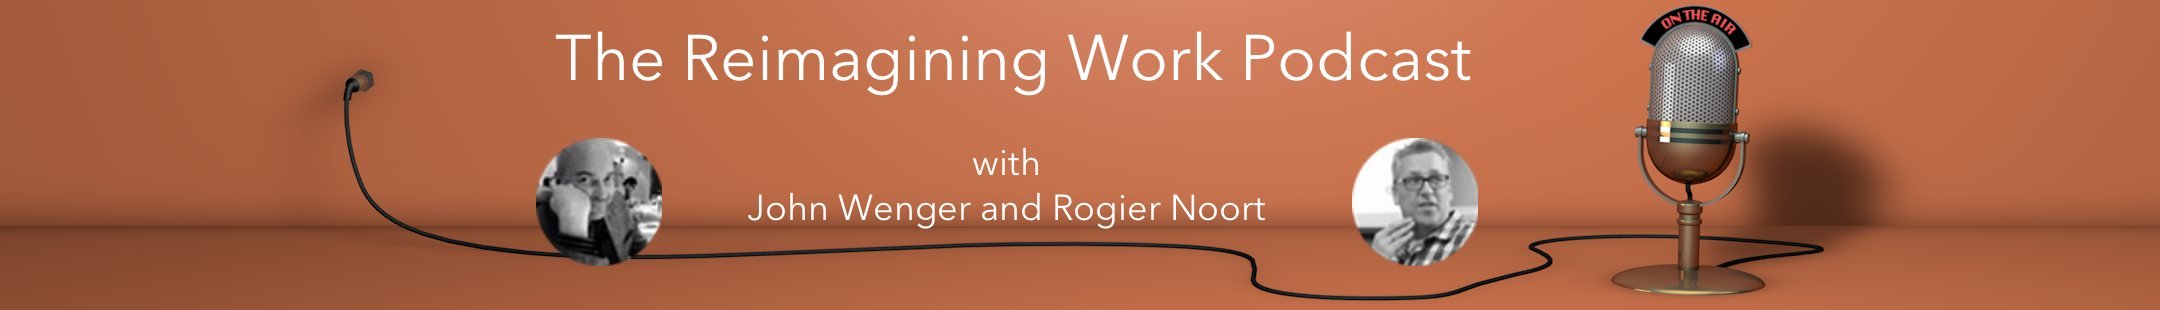 reimagining work podcast